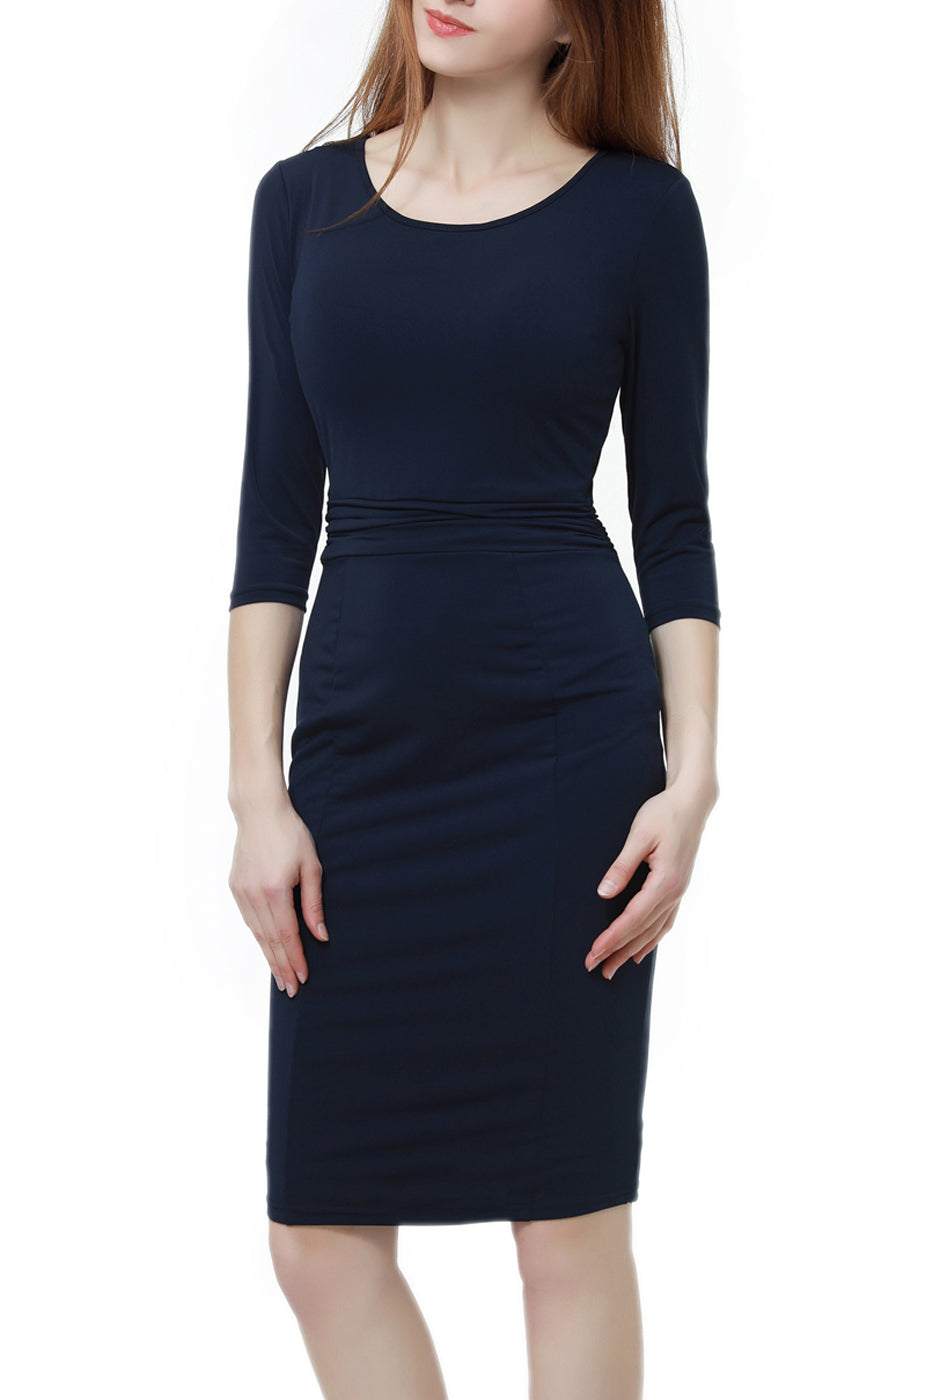 PHISTIC Women's Waist Detail Fitted Midi Dress